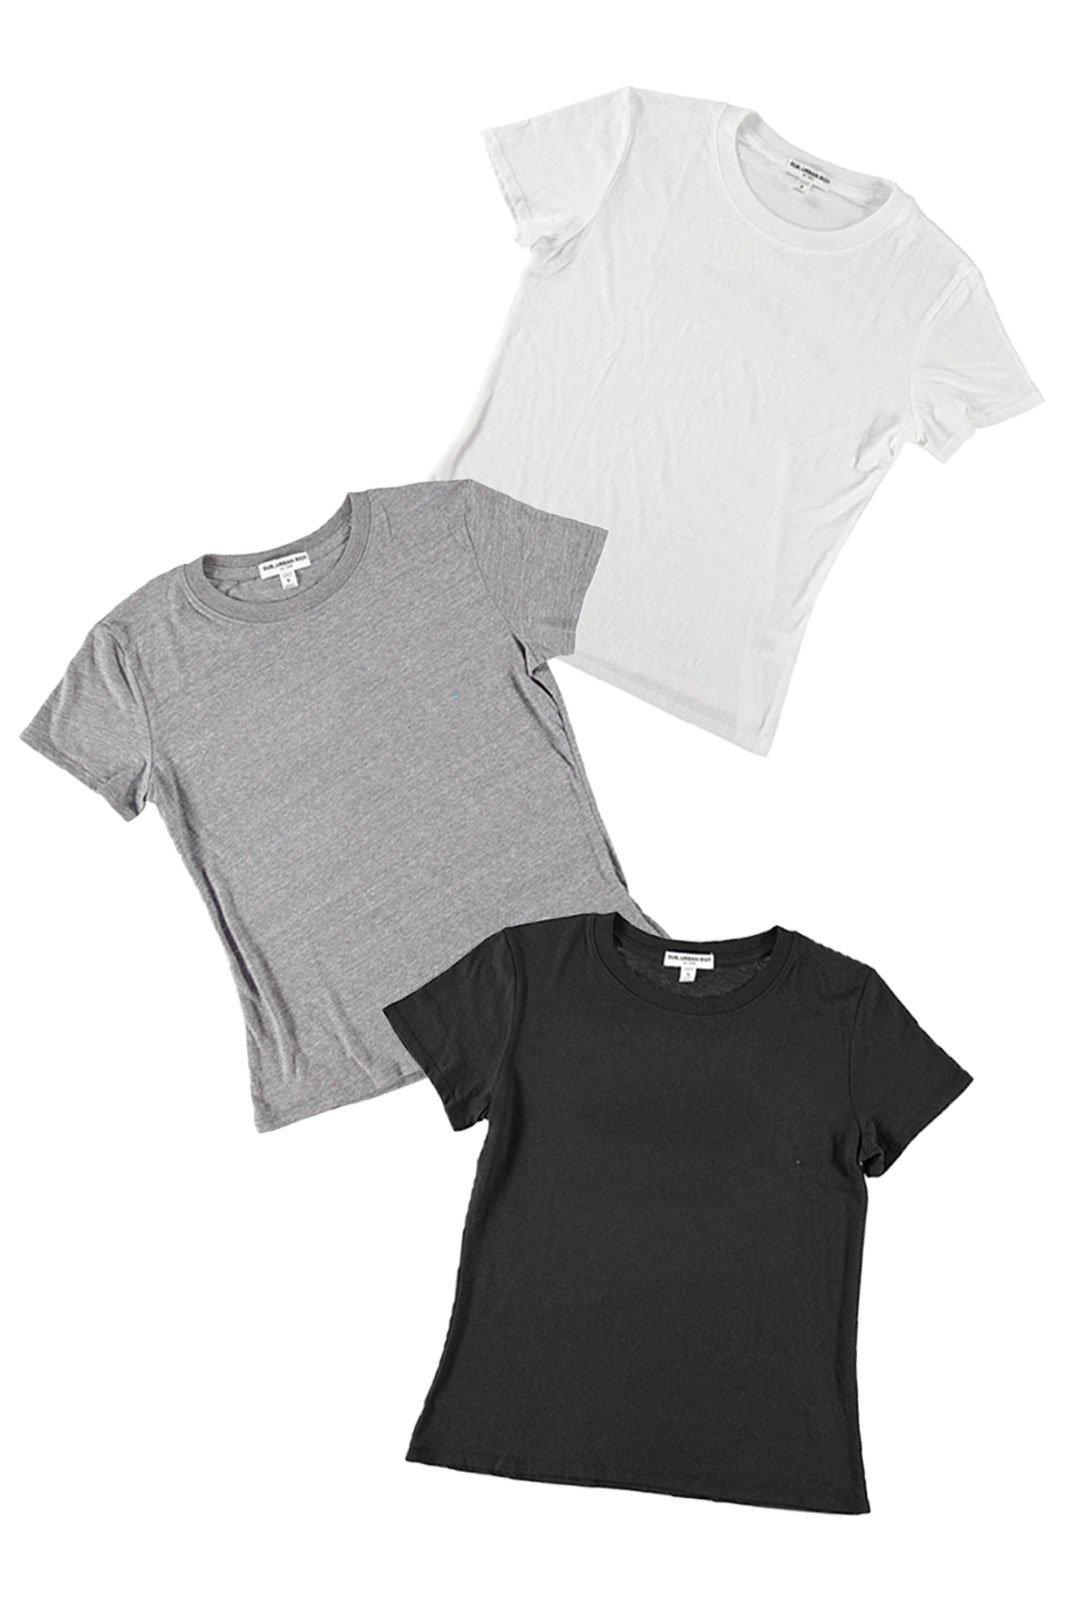 THE LOOSE TEE - 3 PACK 1